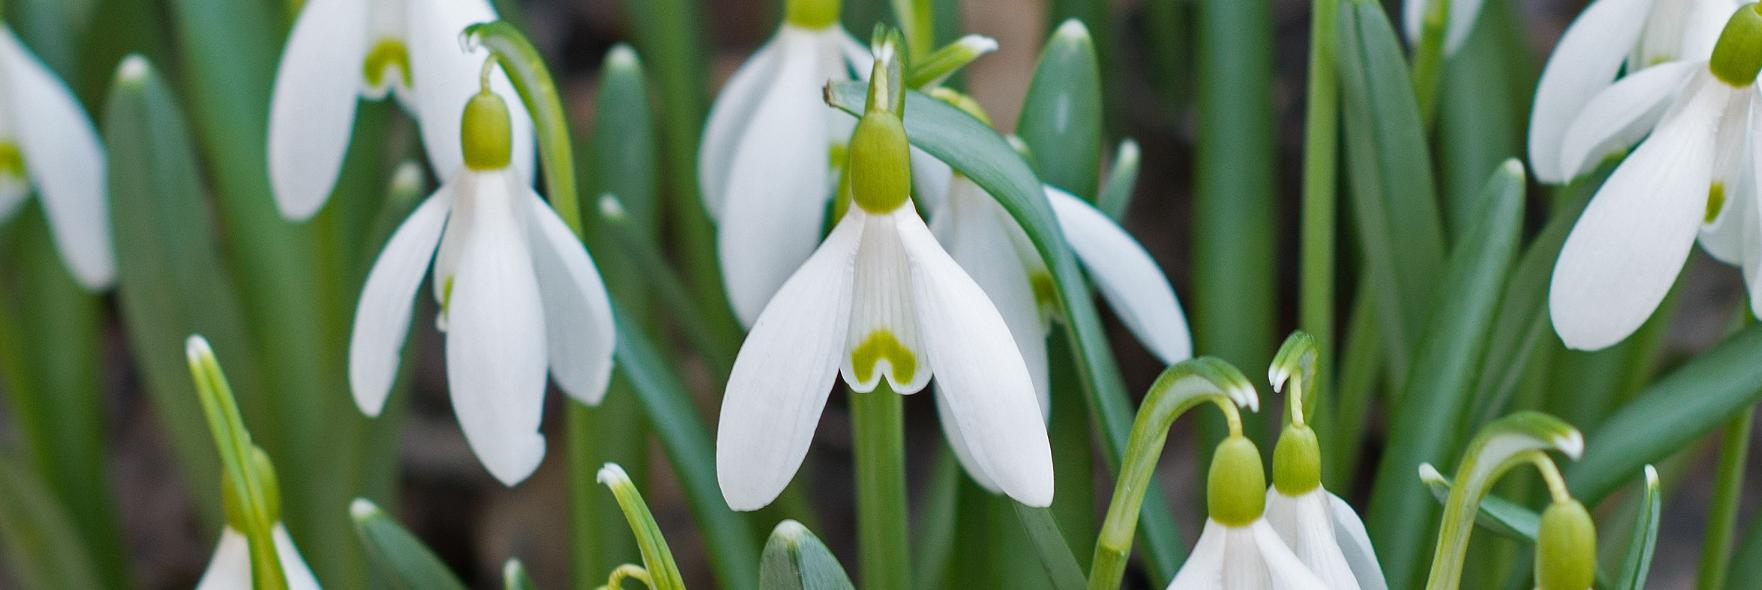 Snow_Drop_Flower_3309